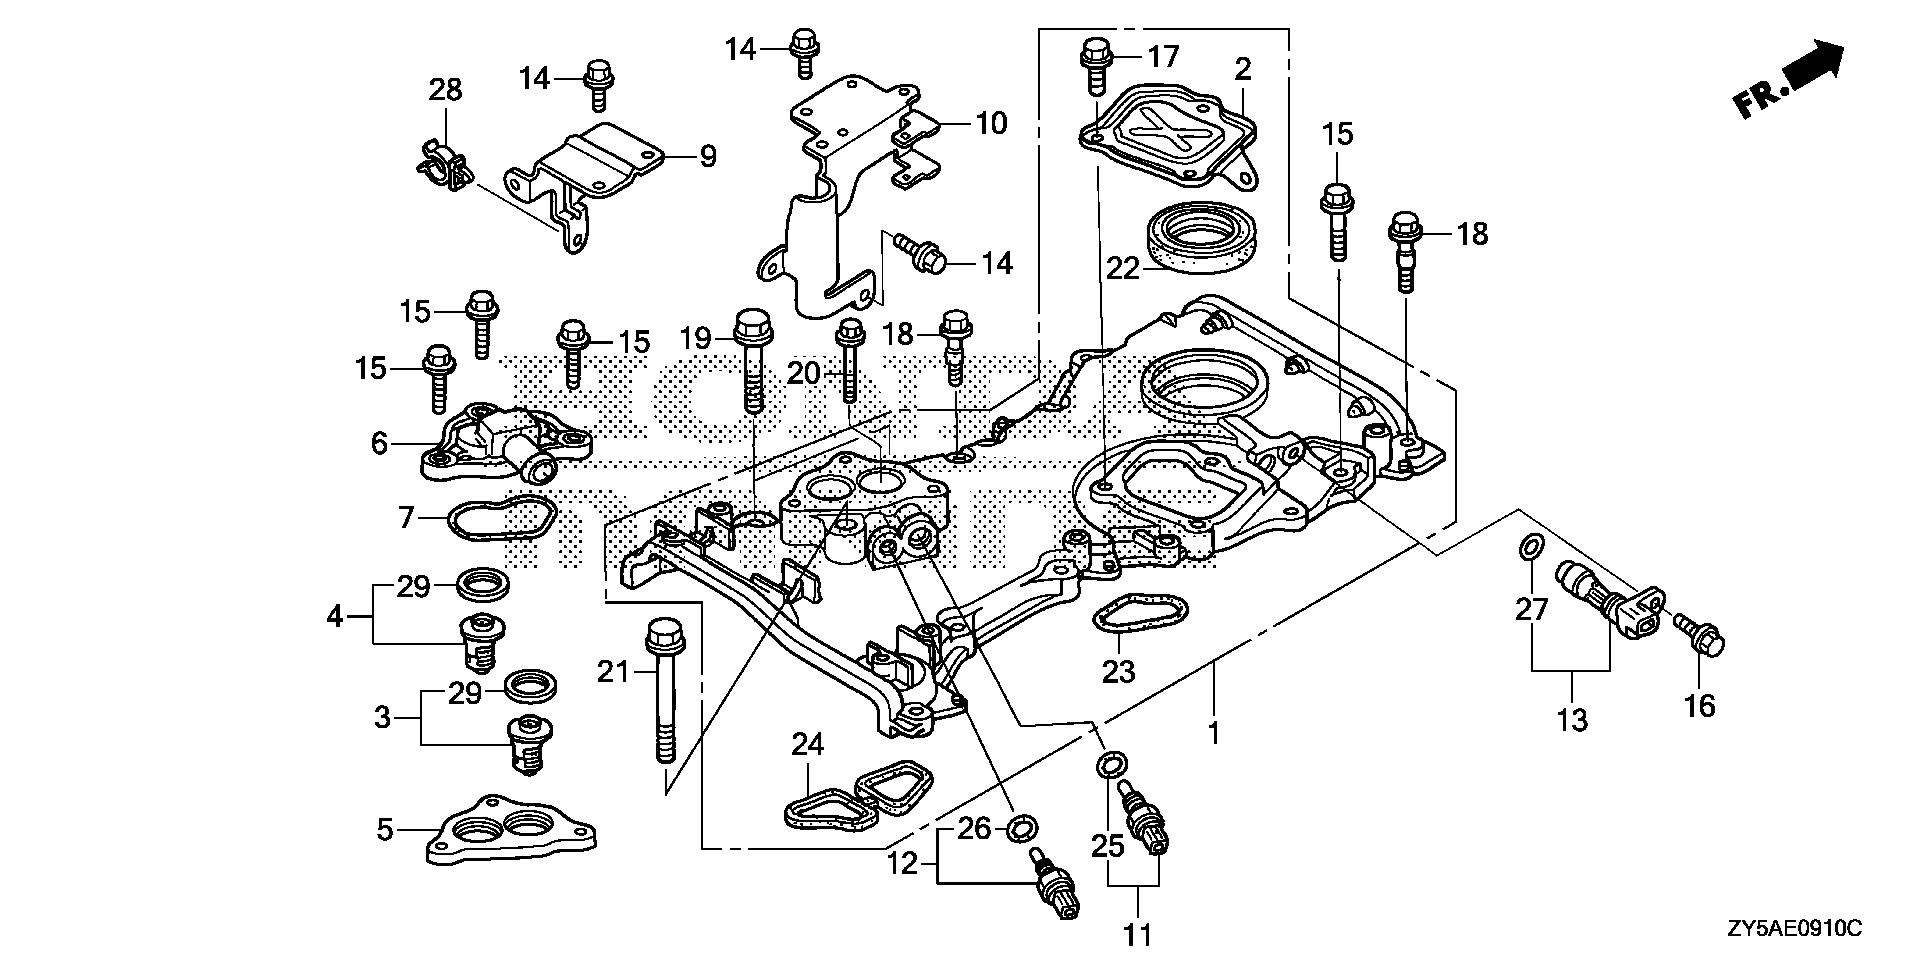 Honda Bf150 Outboard Wiring Diagram Dimensions Recon Marine Parts Look Up Official Site On Bf 150 Harness Diagrams